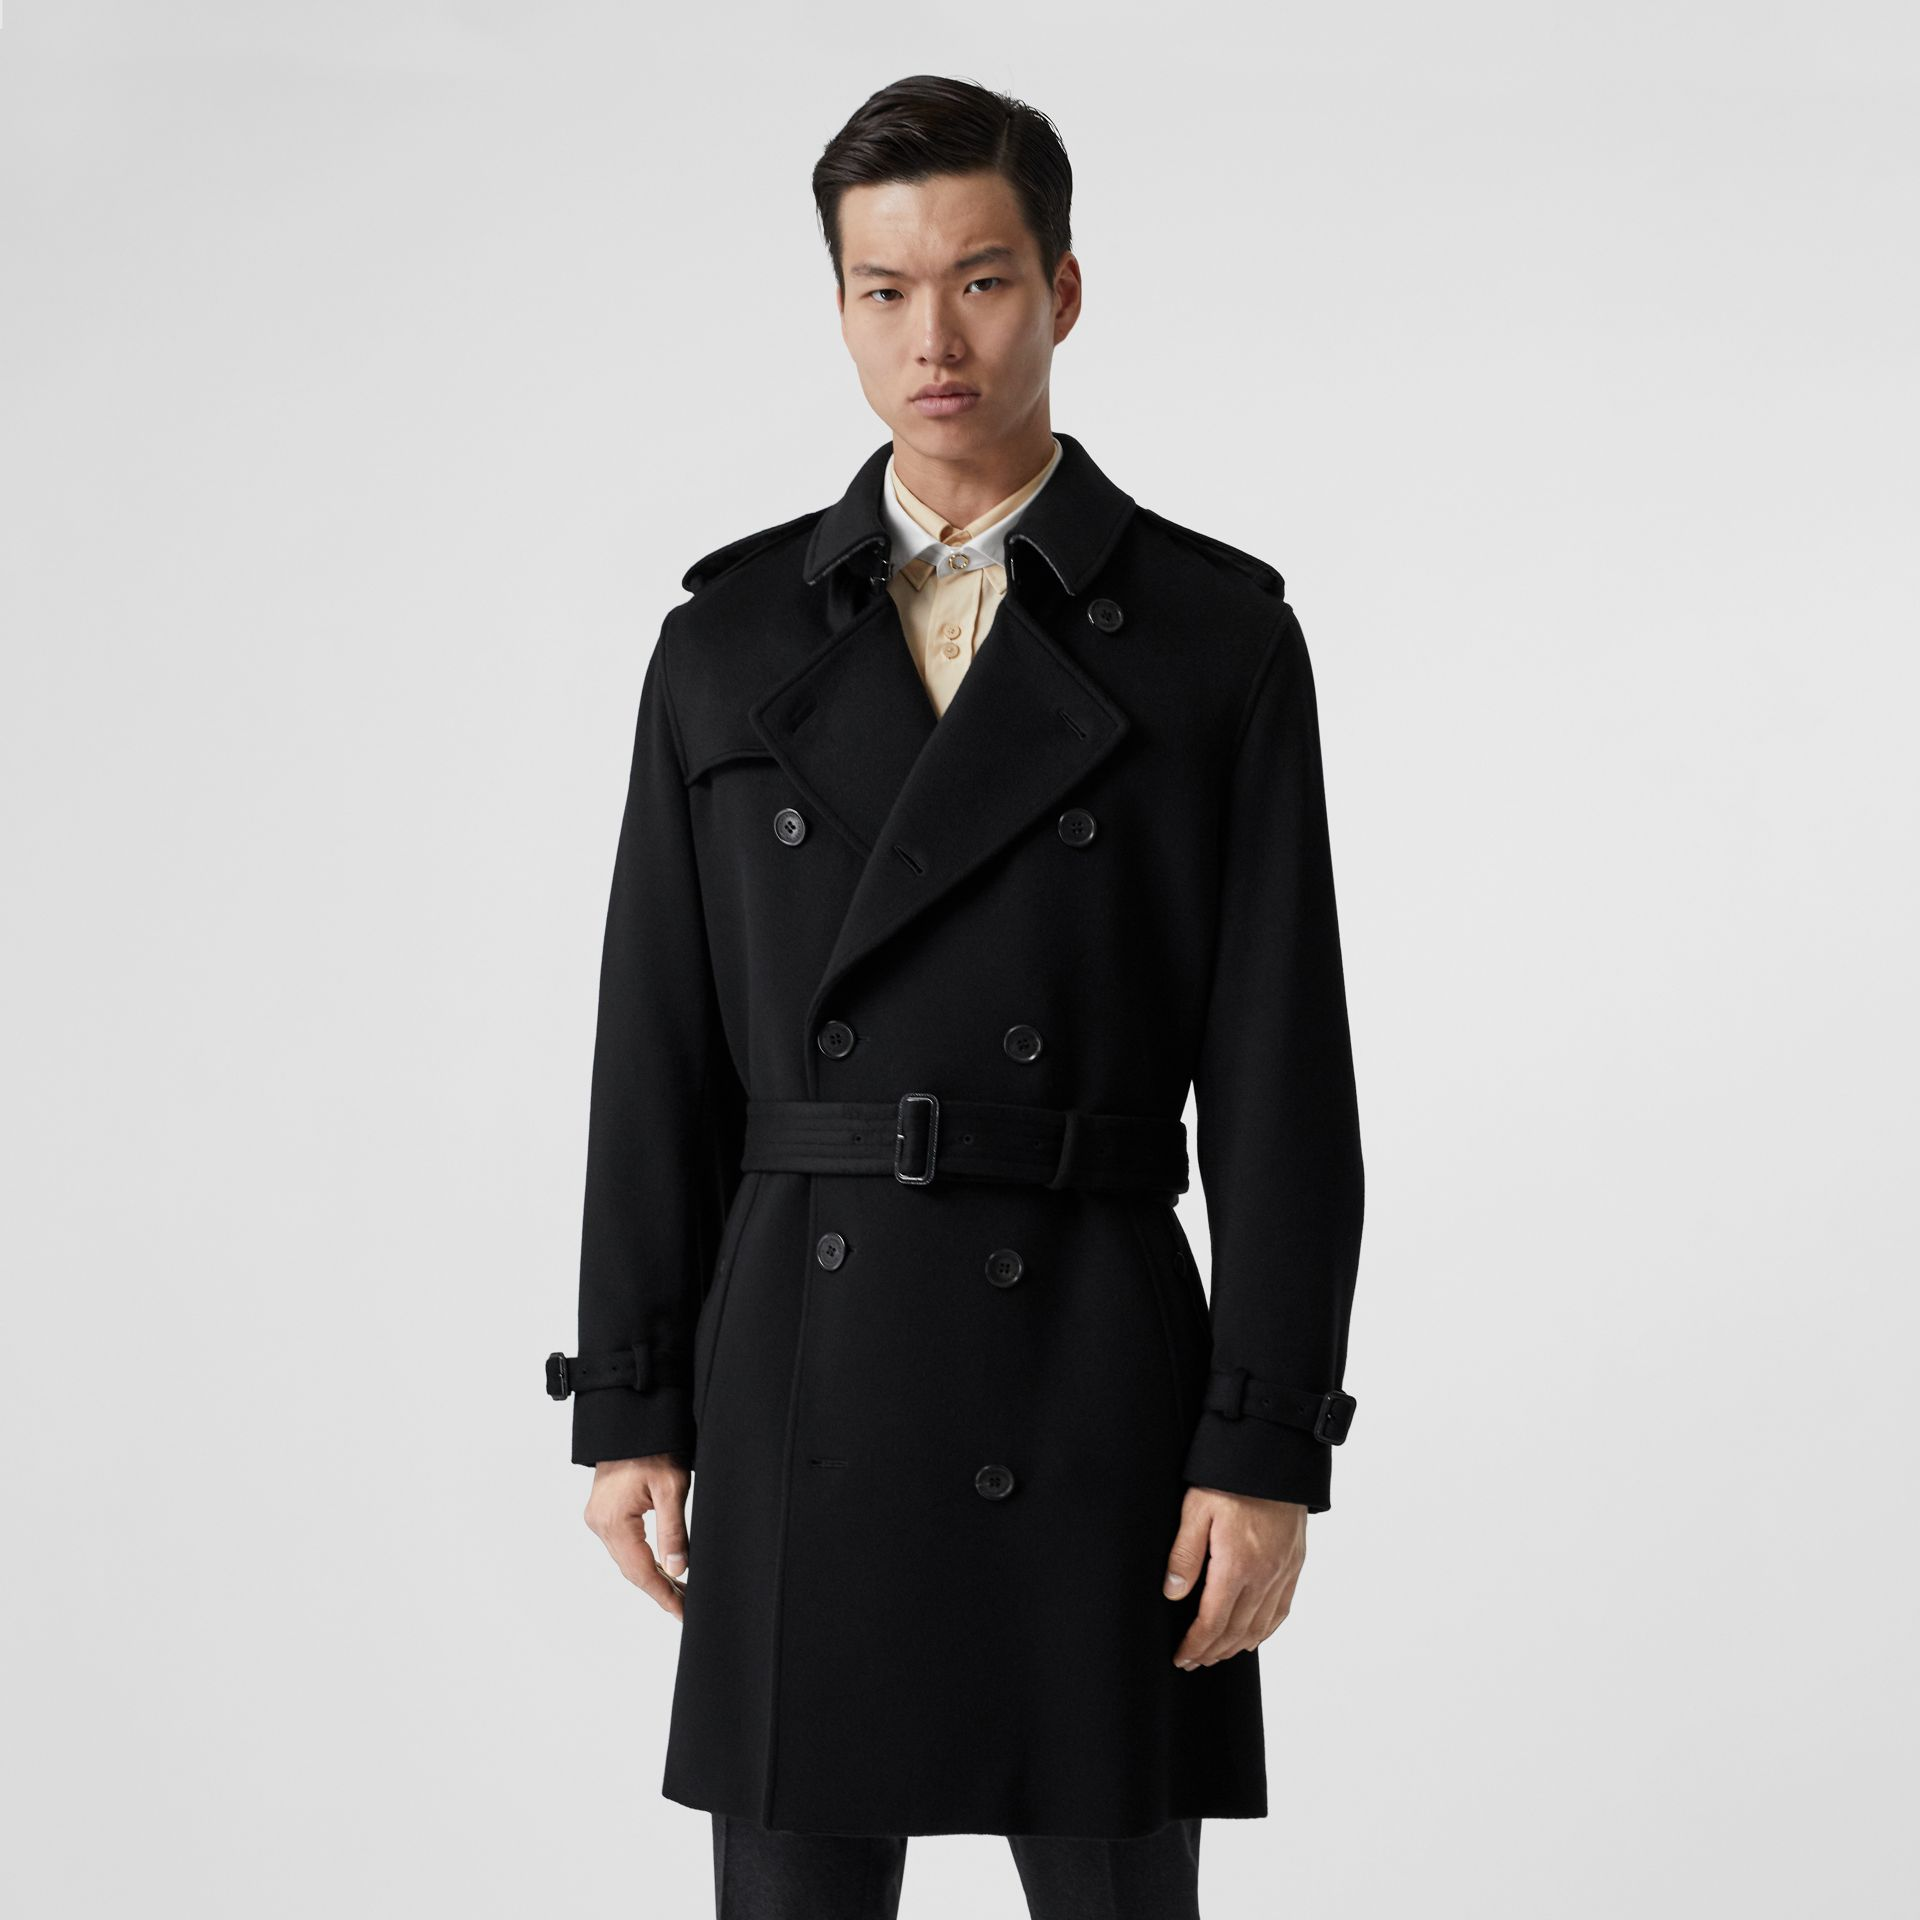 Cashmere Trench Coat in Black - Men | Burberry - gallery image 6